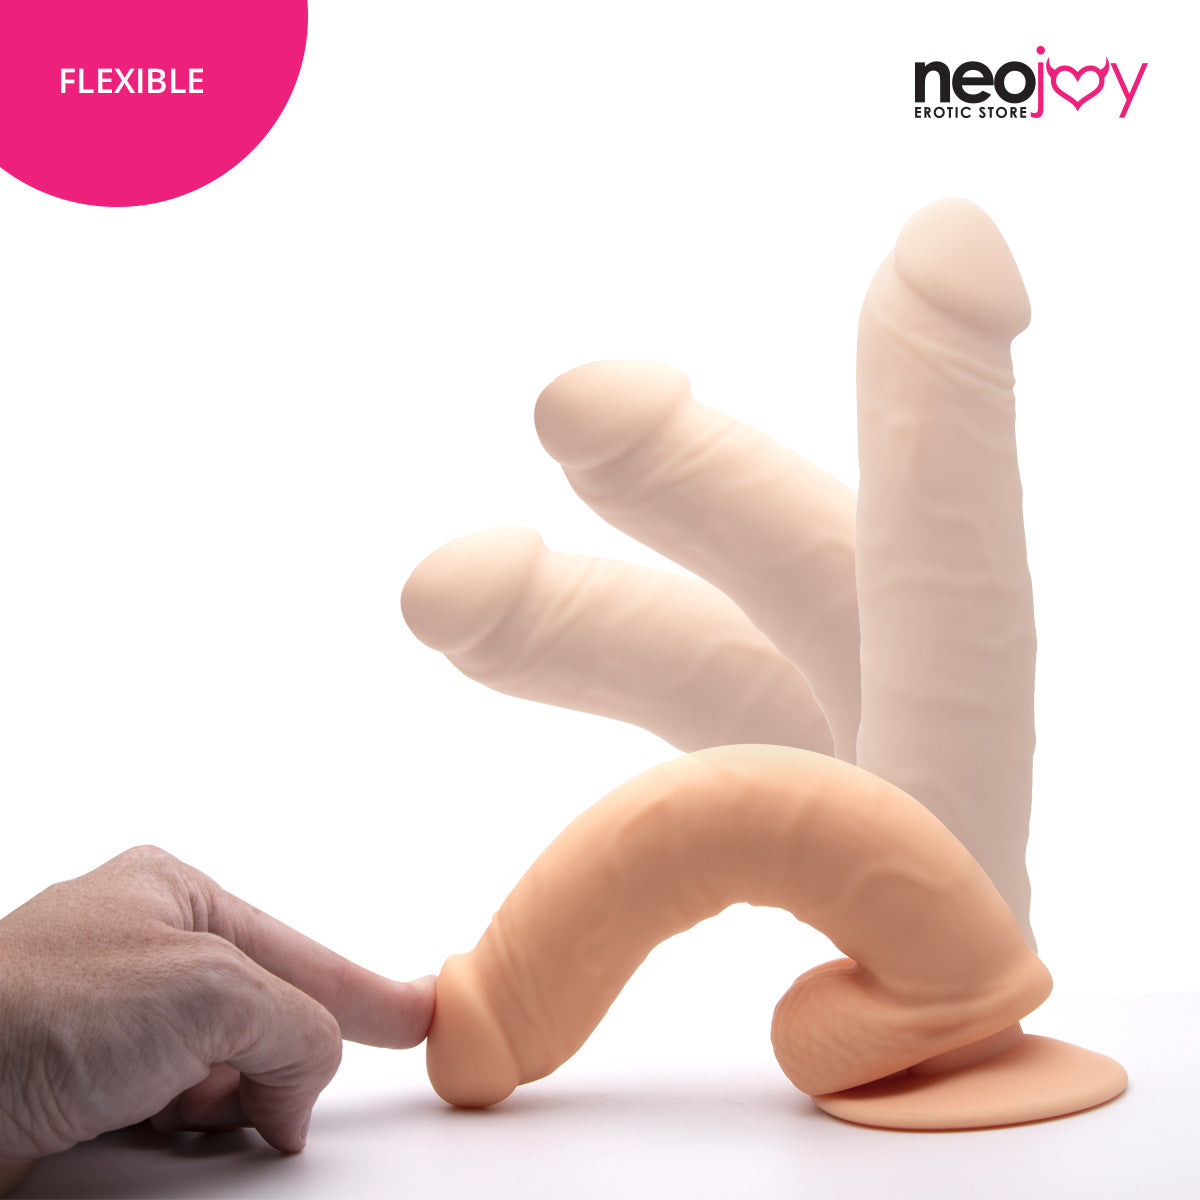 Neojoy Daydream Premium Silicone Realistic Dildo Flesh with Suction Cup 17.5cm - 6.8 inch 151056+154127